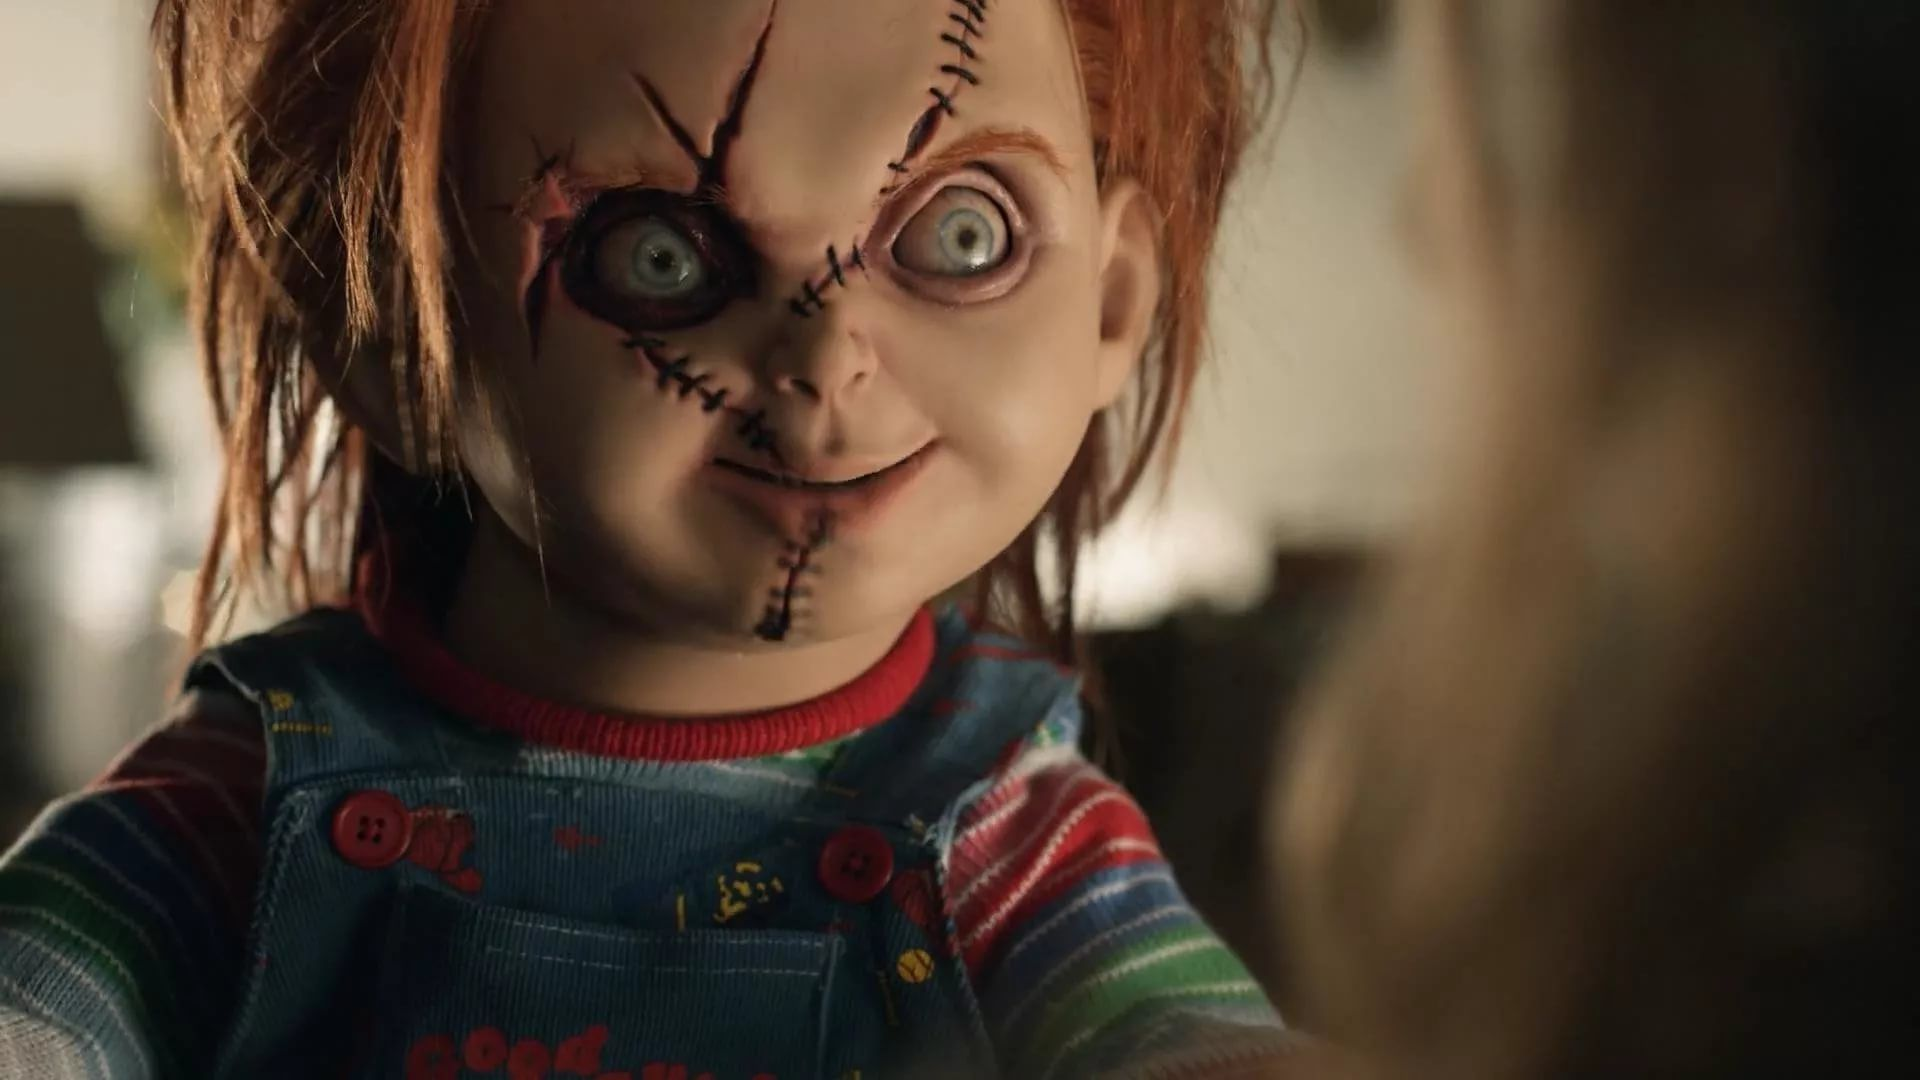 Chucky Doll Background Wallpaper